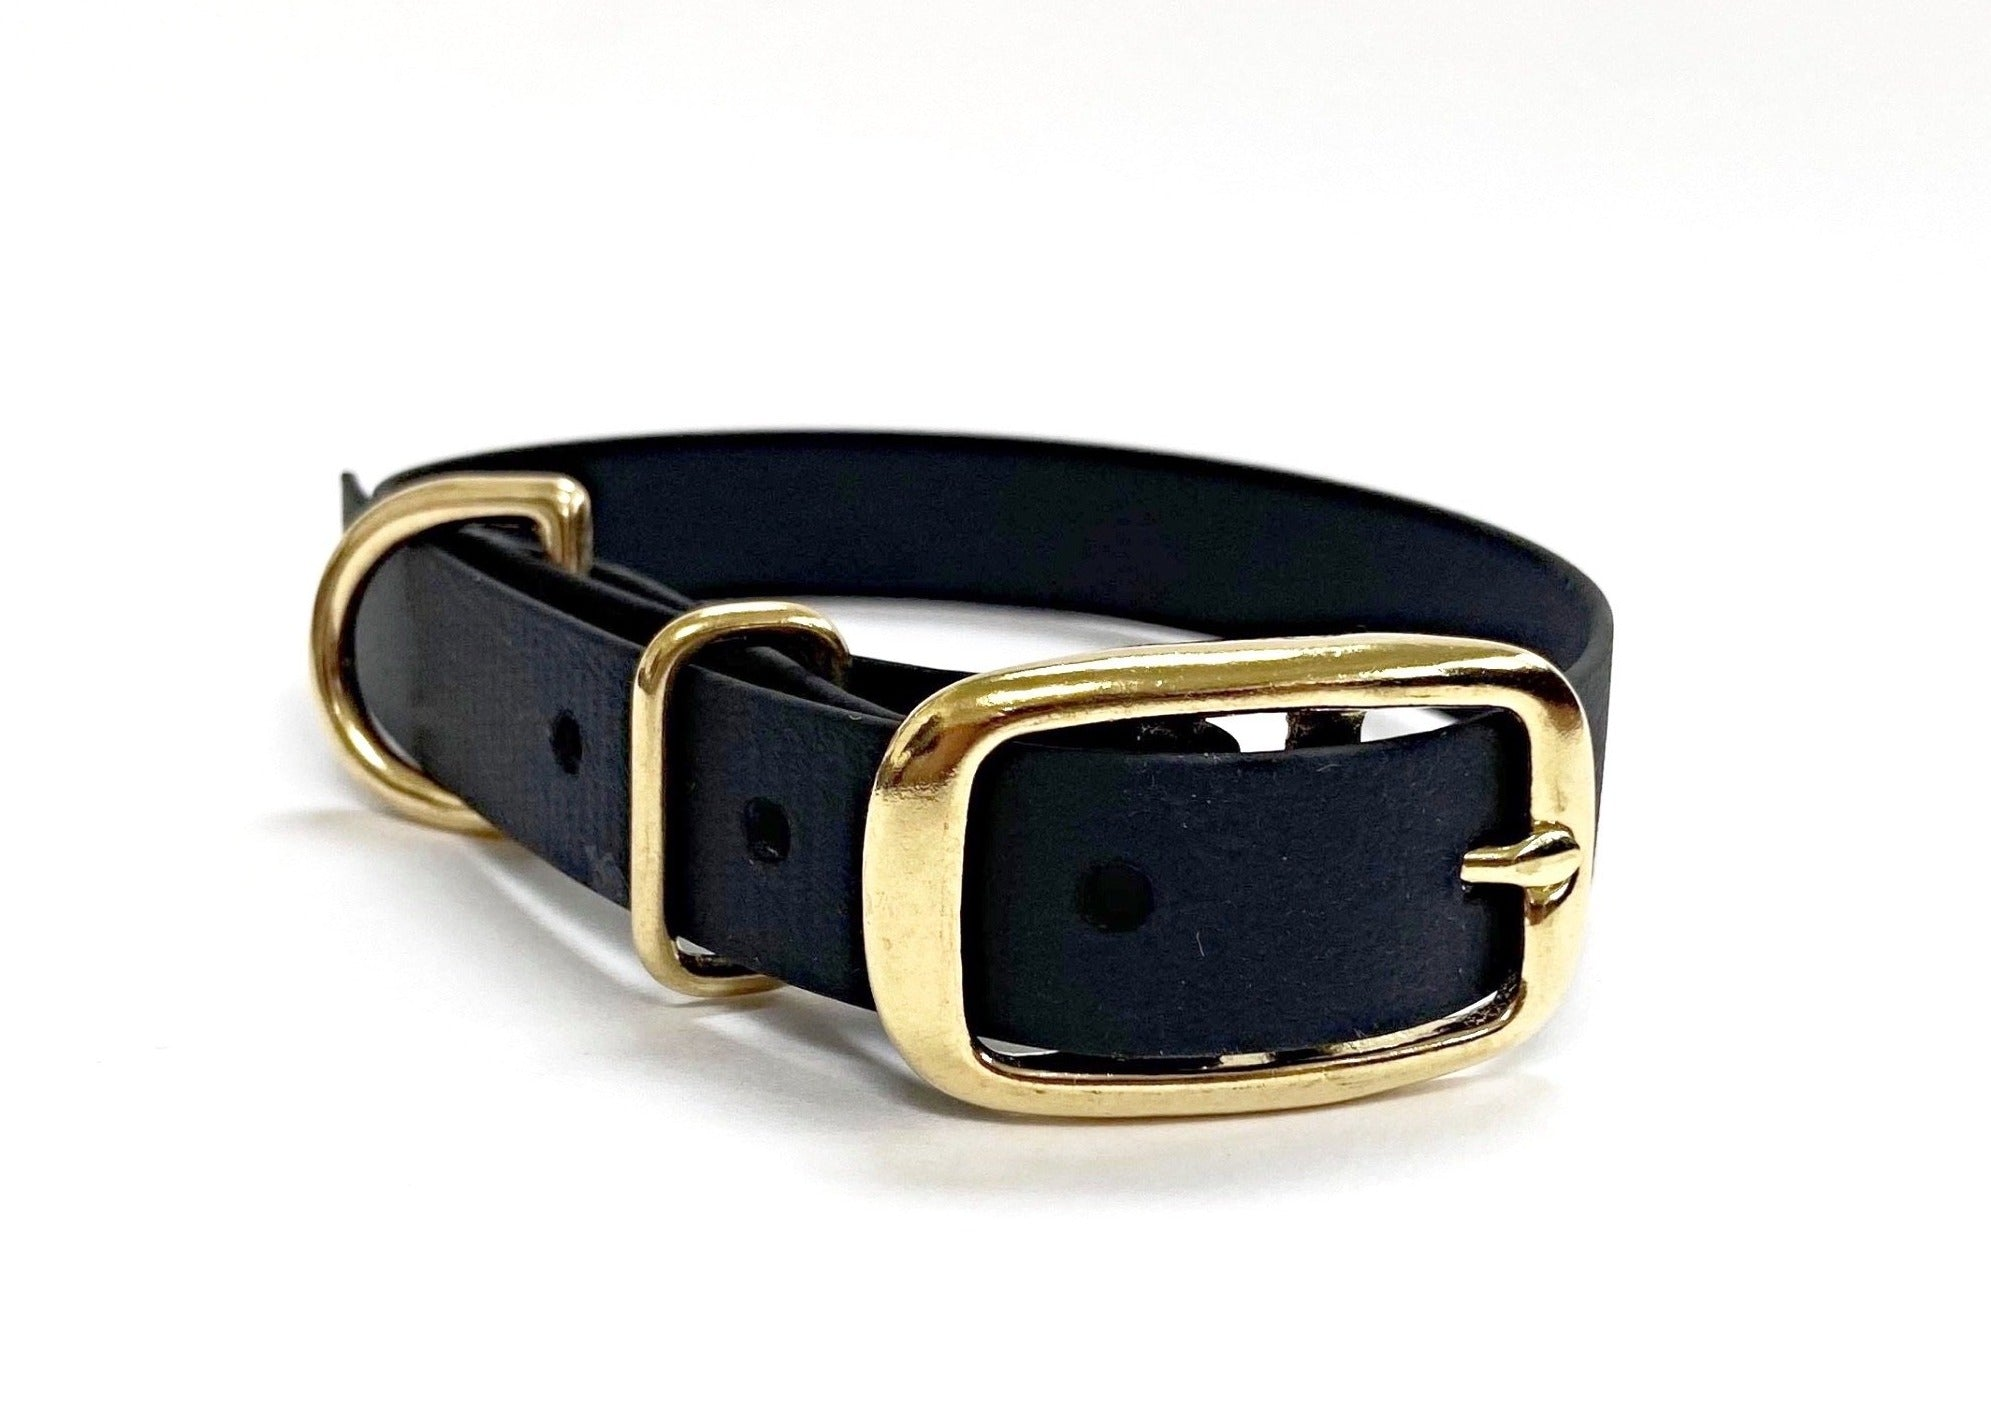 Biothane Waterproof Collar - Black/Brass